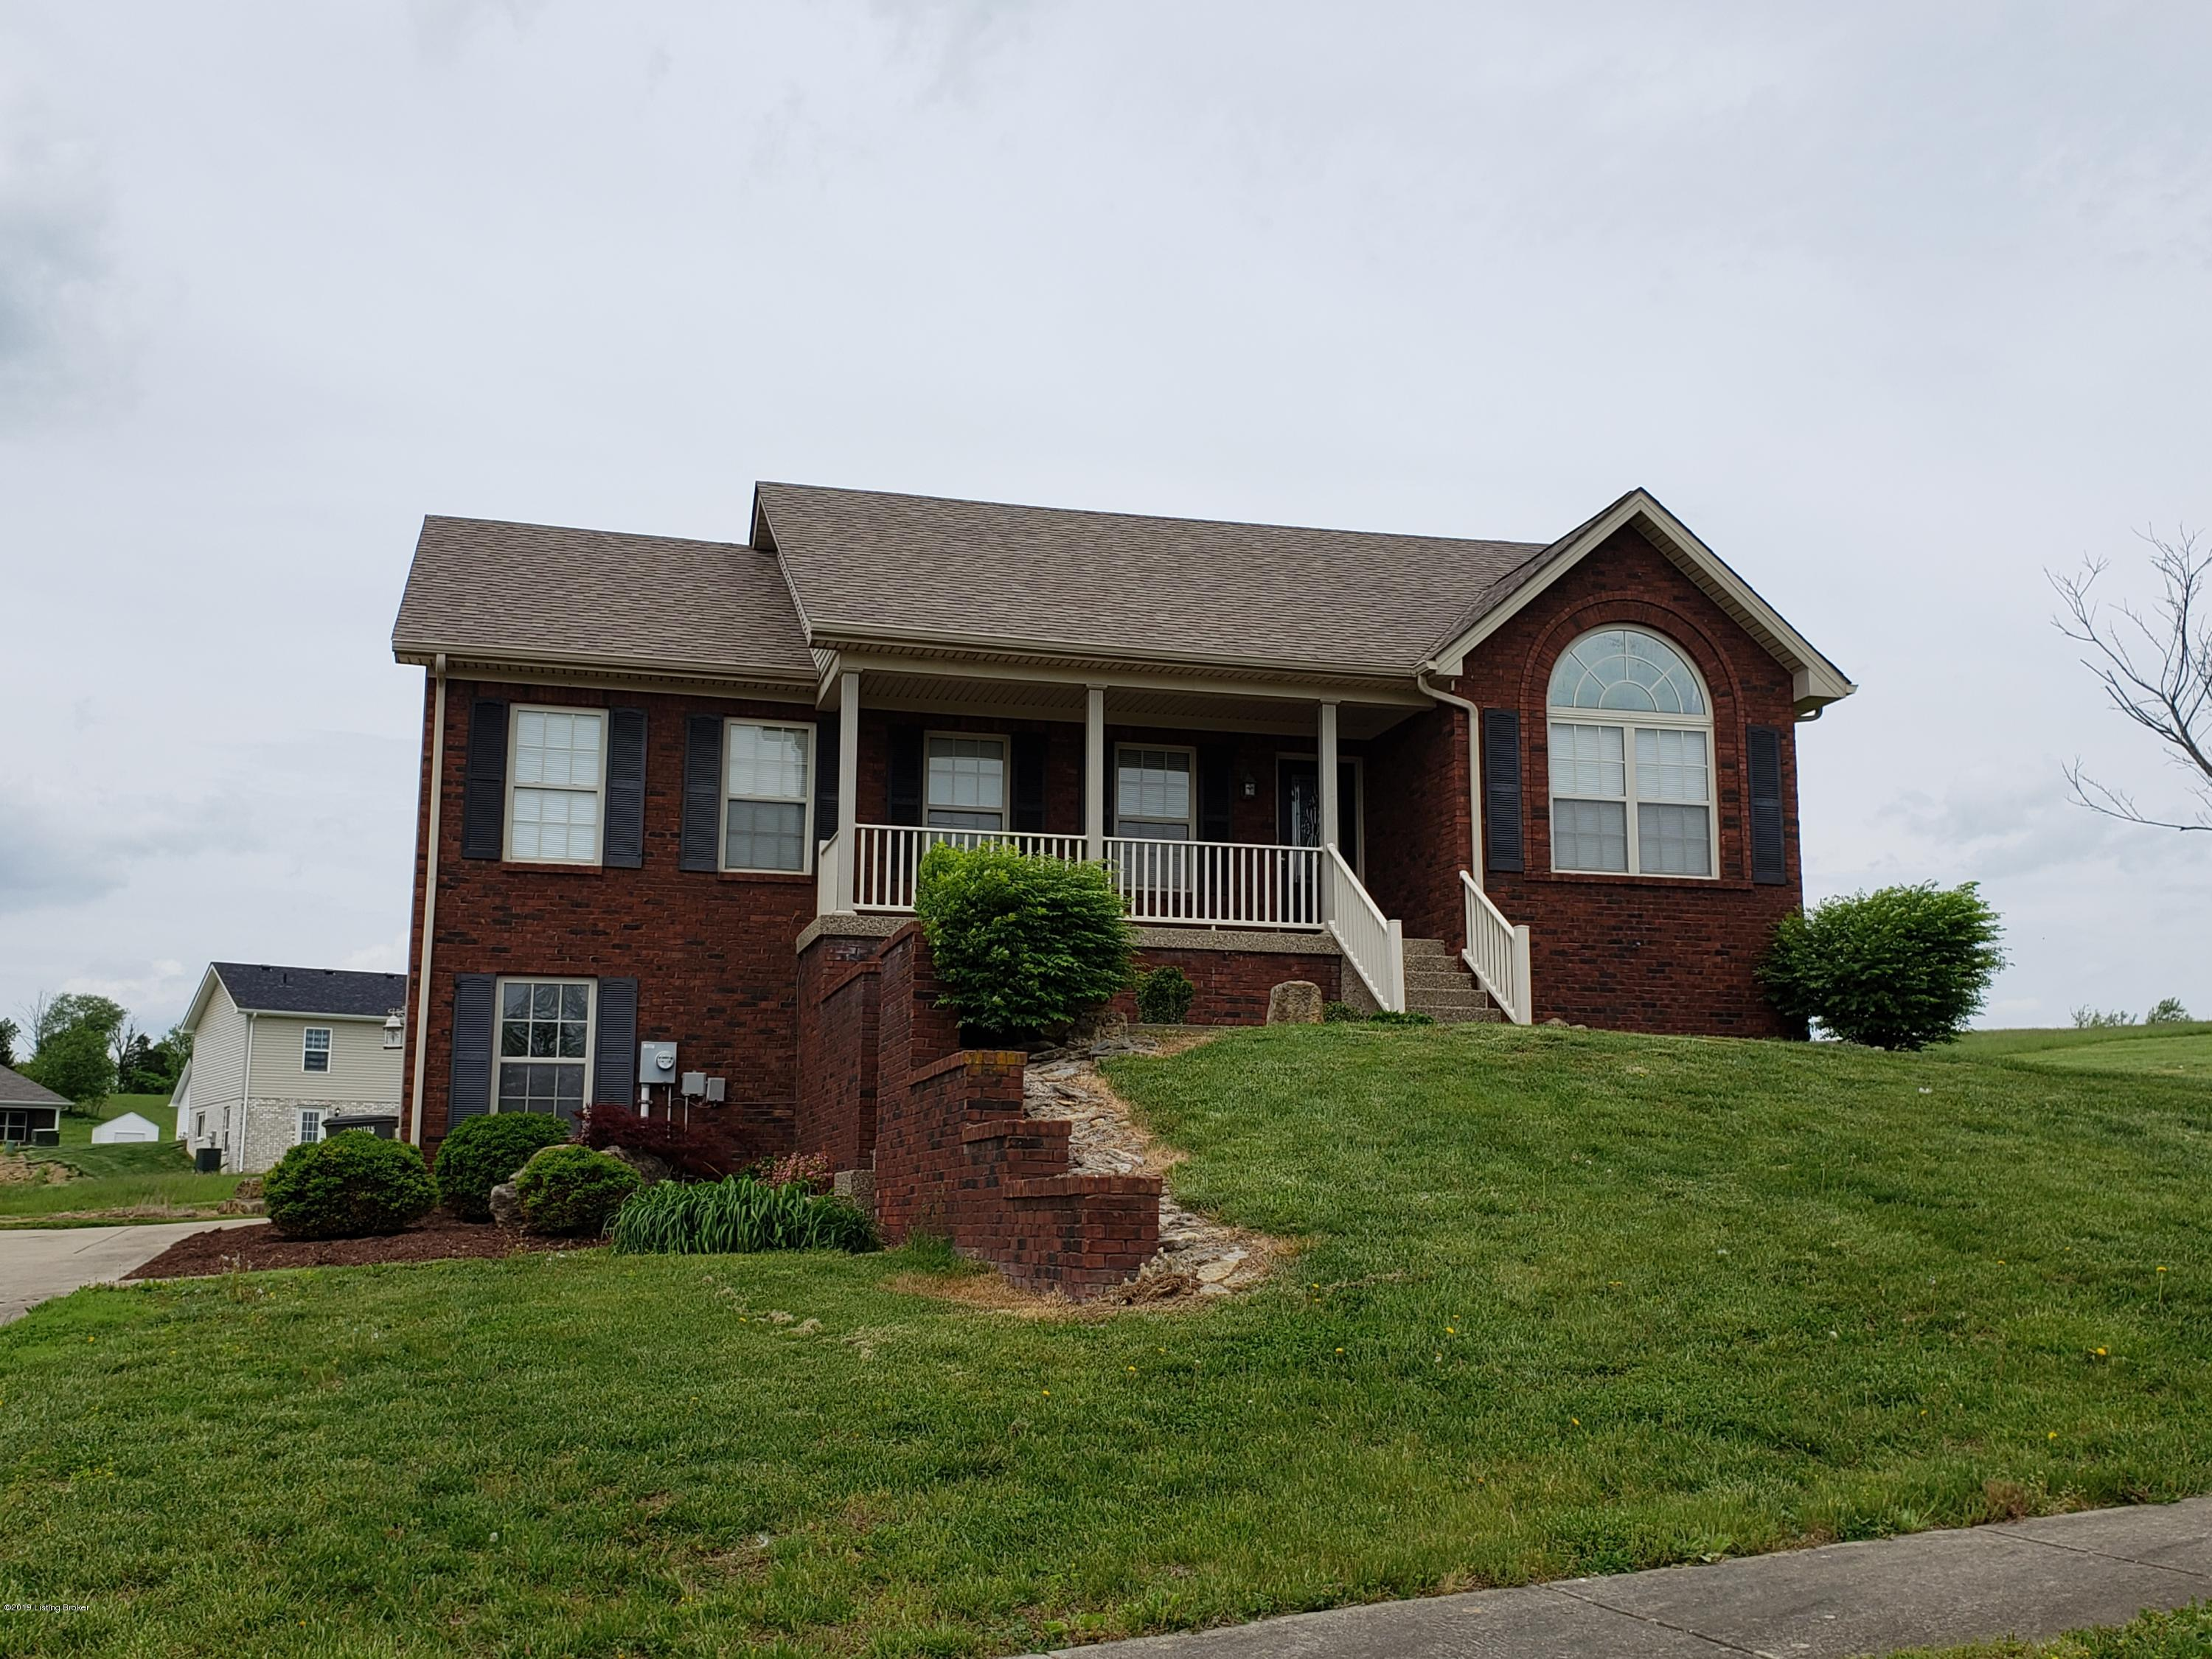 359 Sycamore Dr, Taylorsville, Kentucky 40071